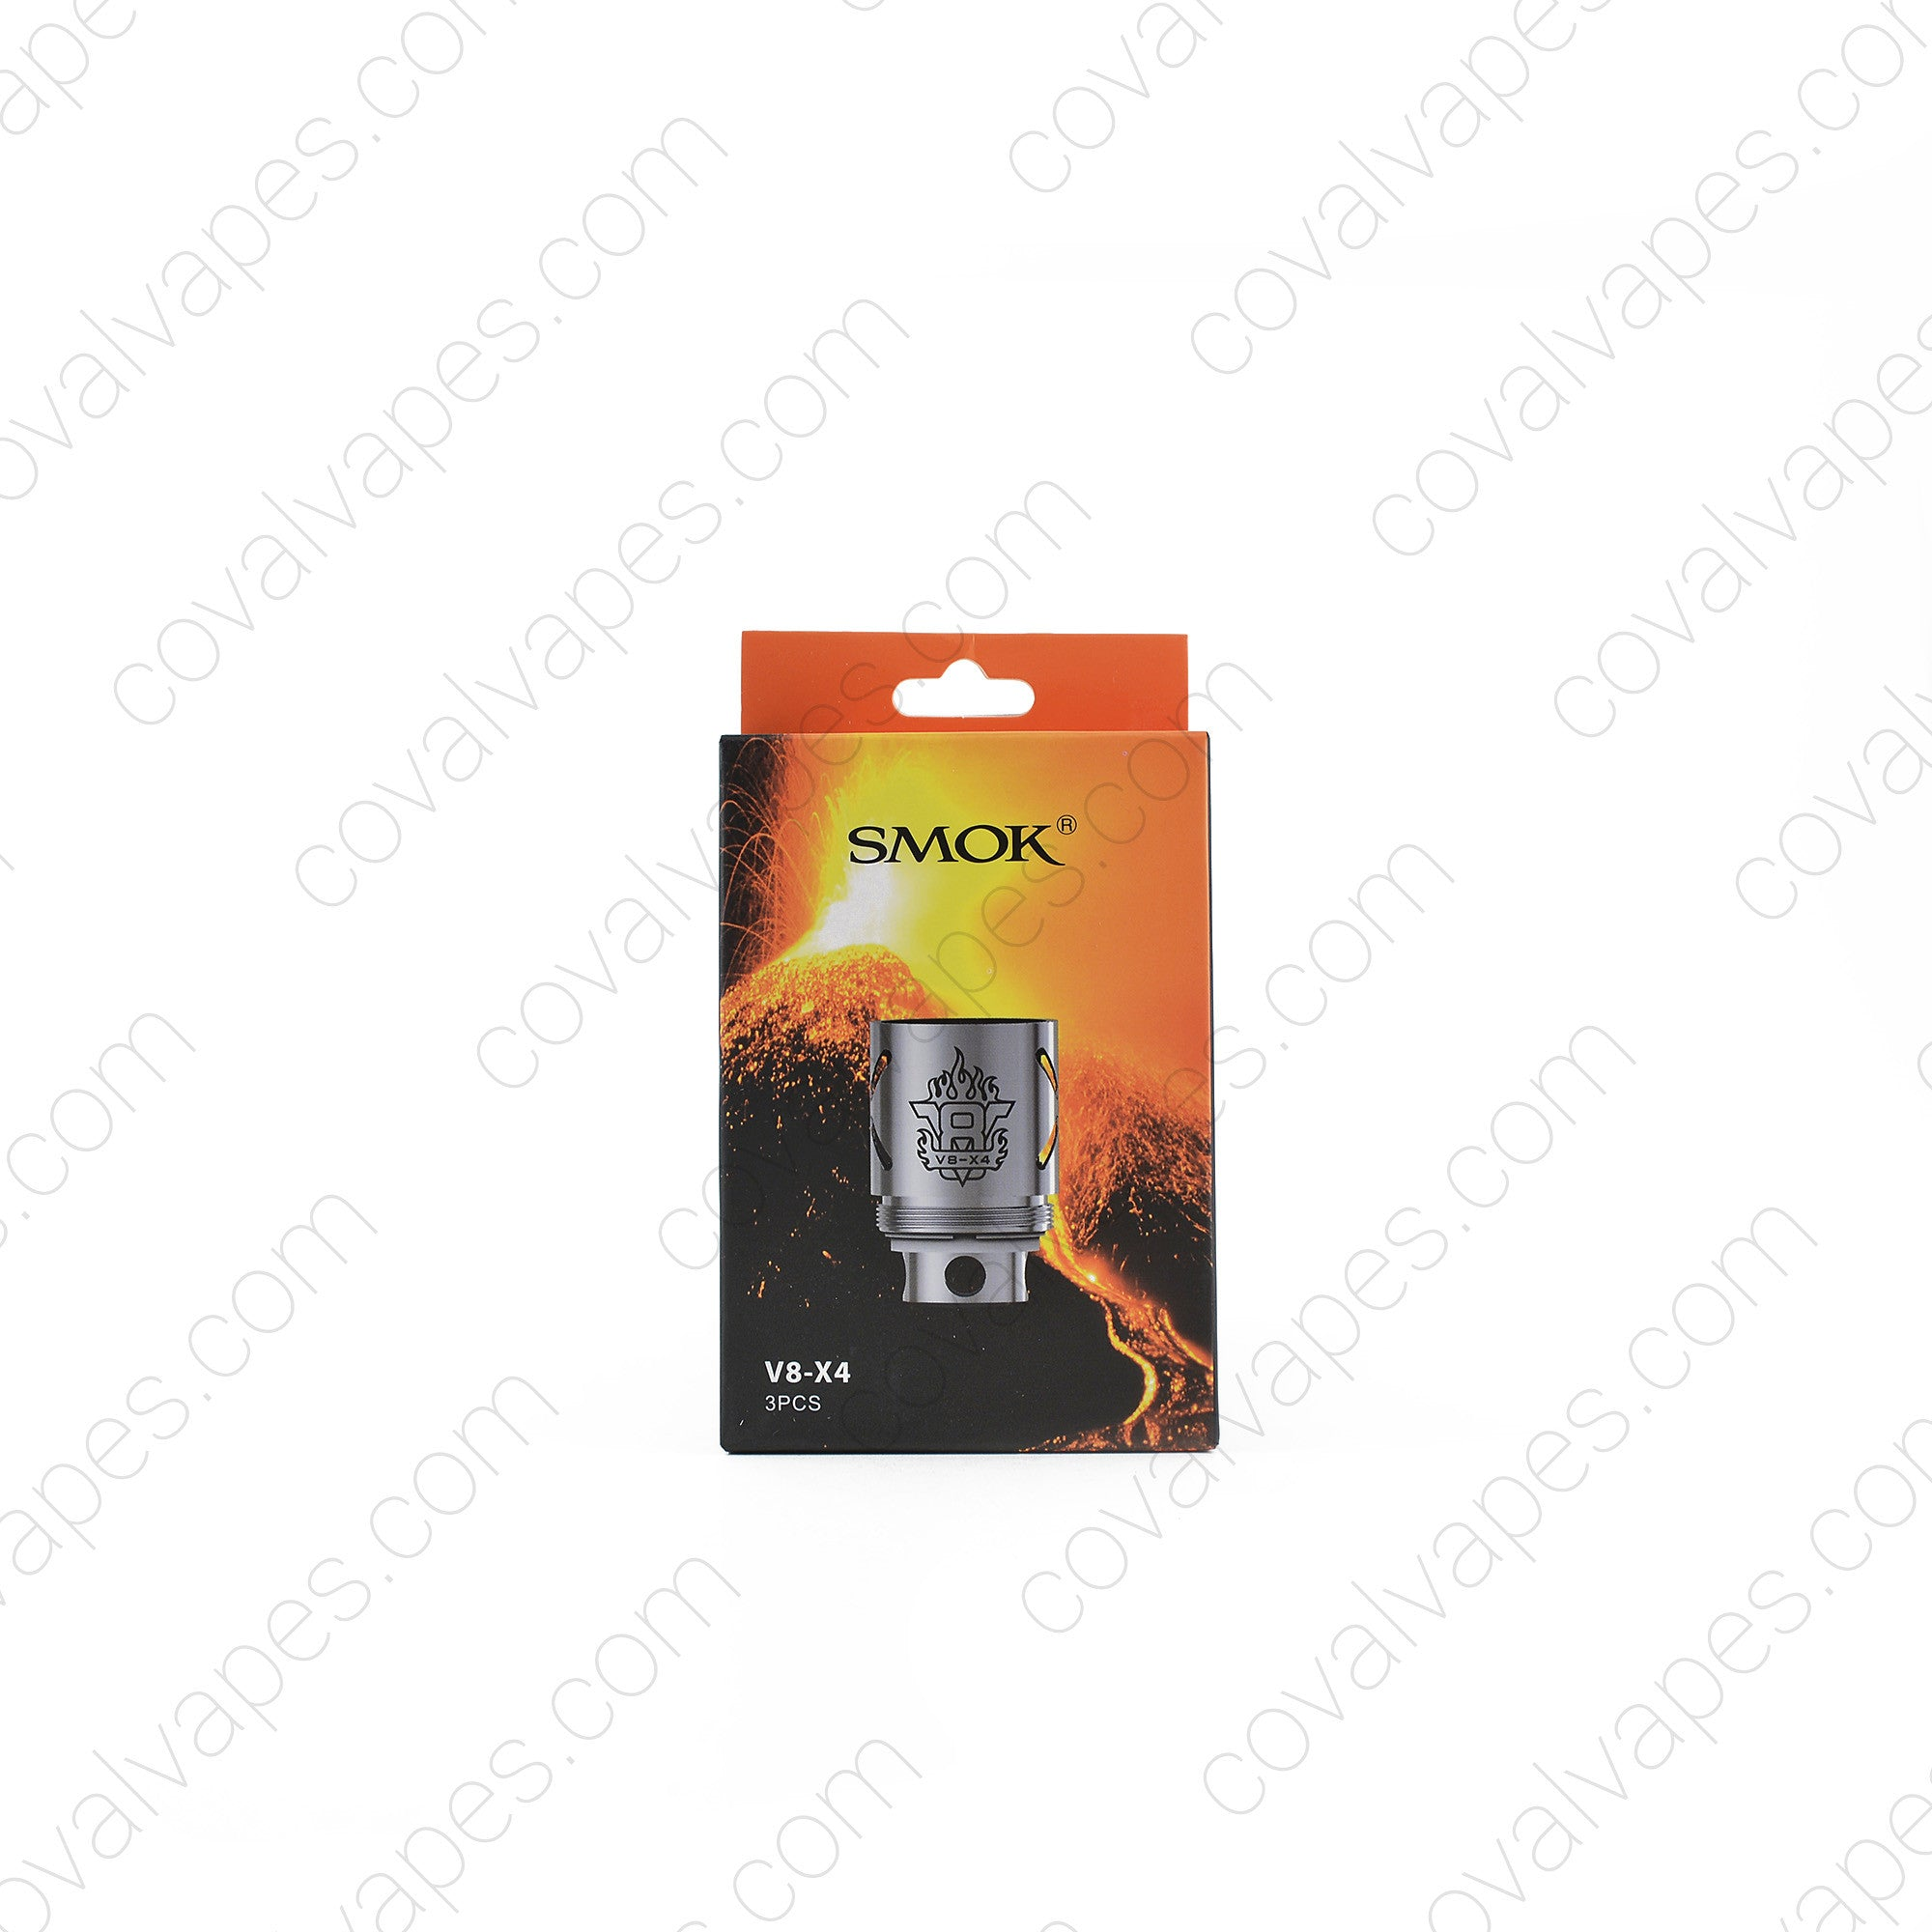 SMOK TFV8 Replacement Coils (Multi-pack)